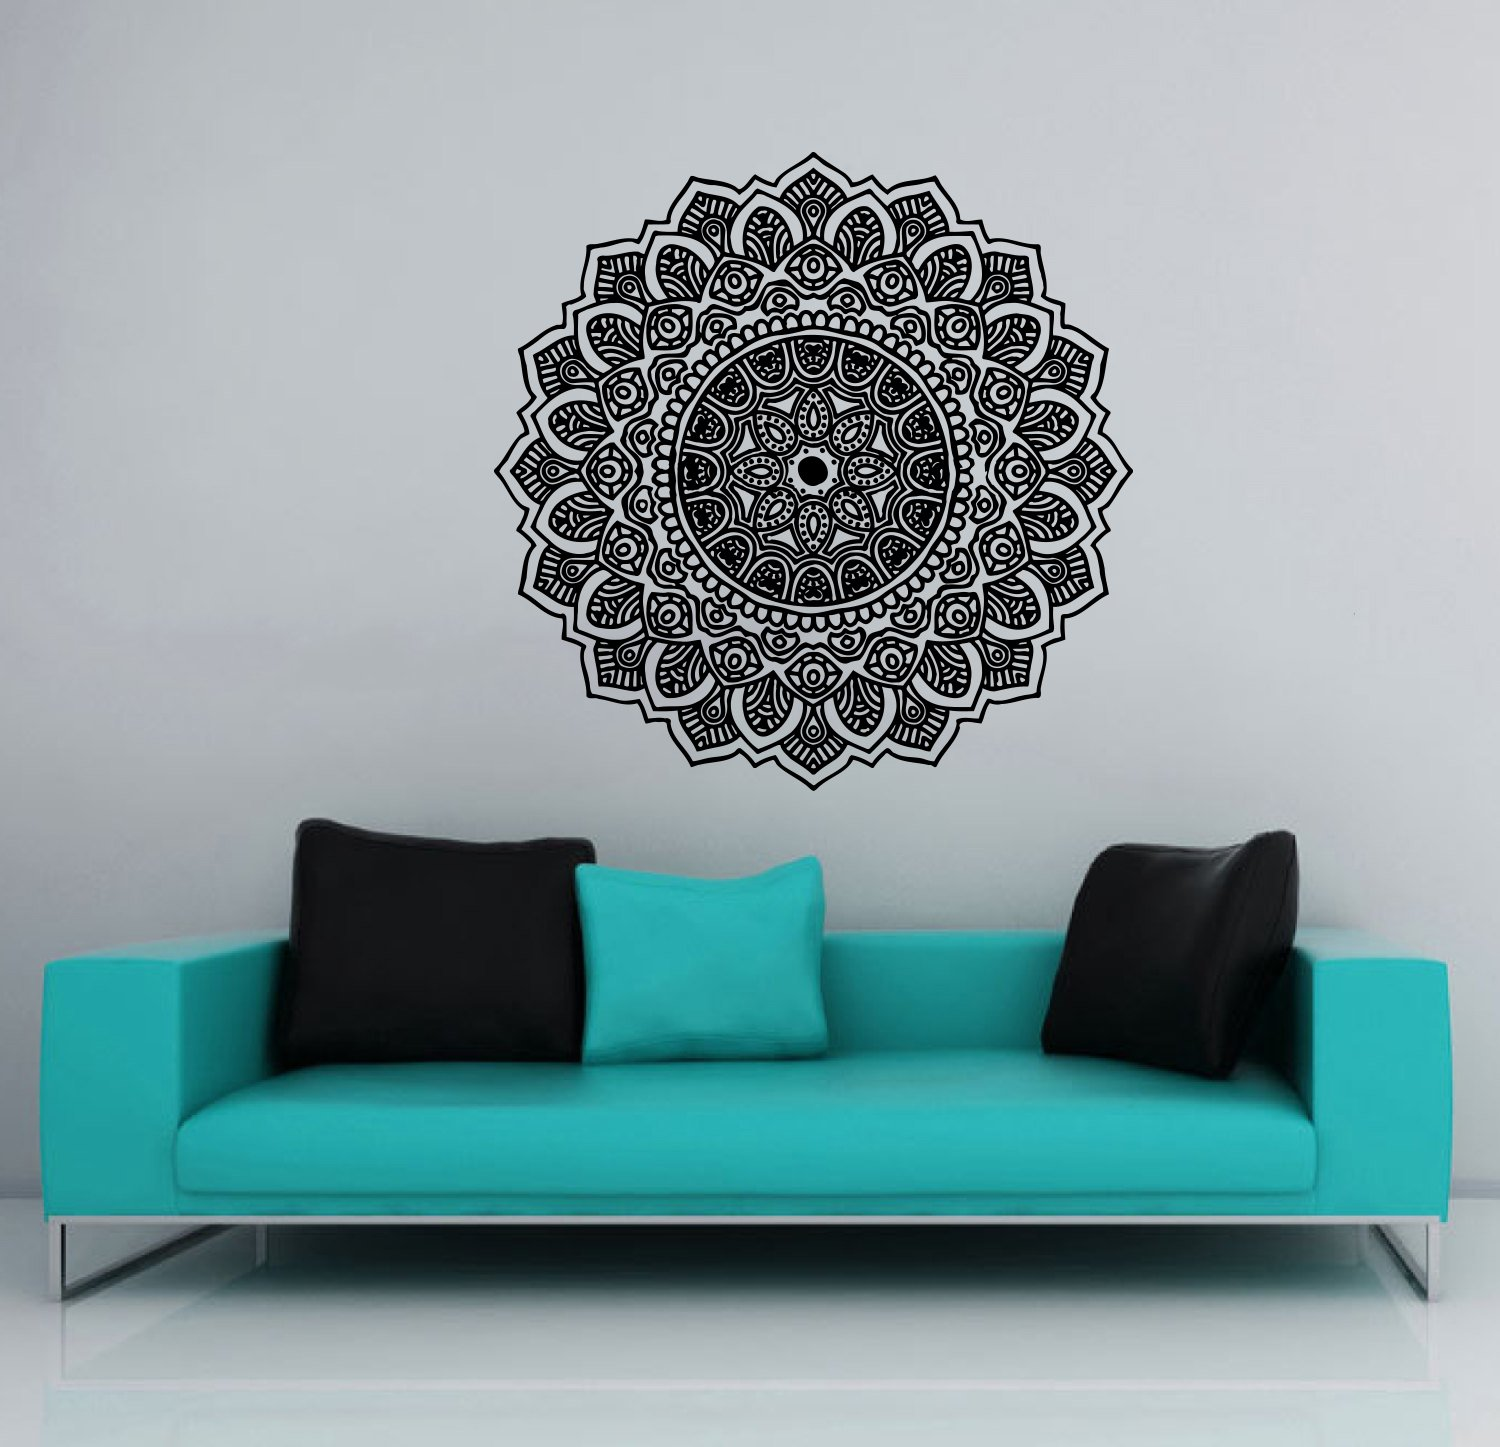 Tile wall decals vinyl stickers moroccan style home decor for ...